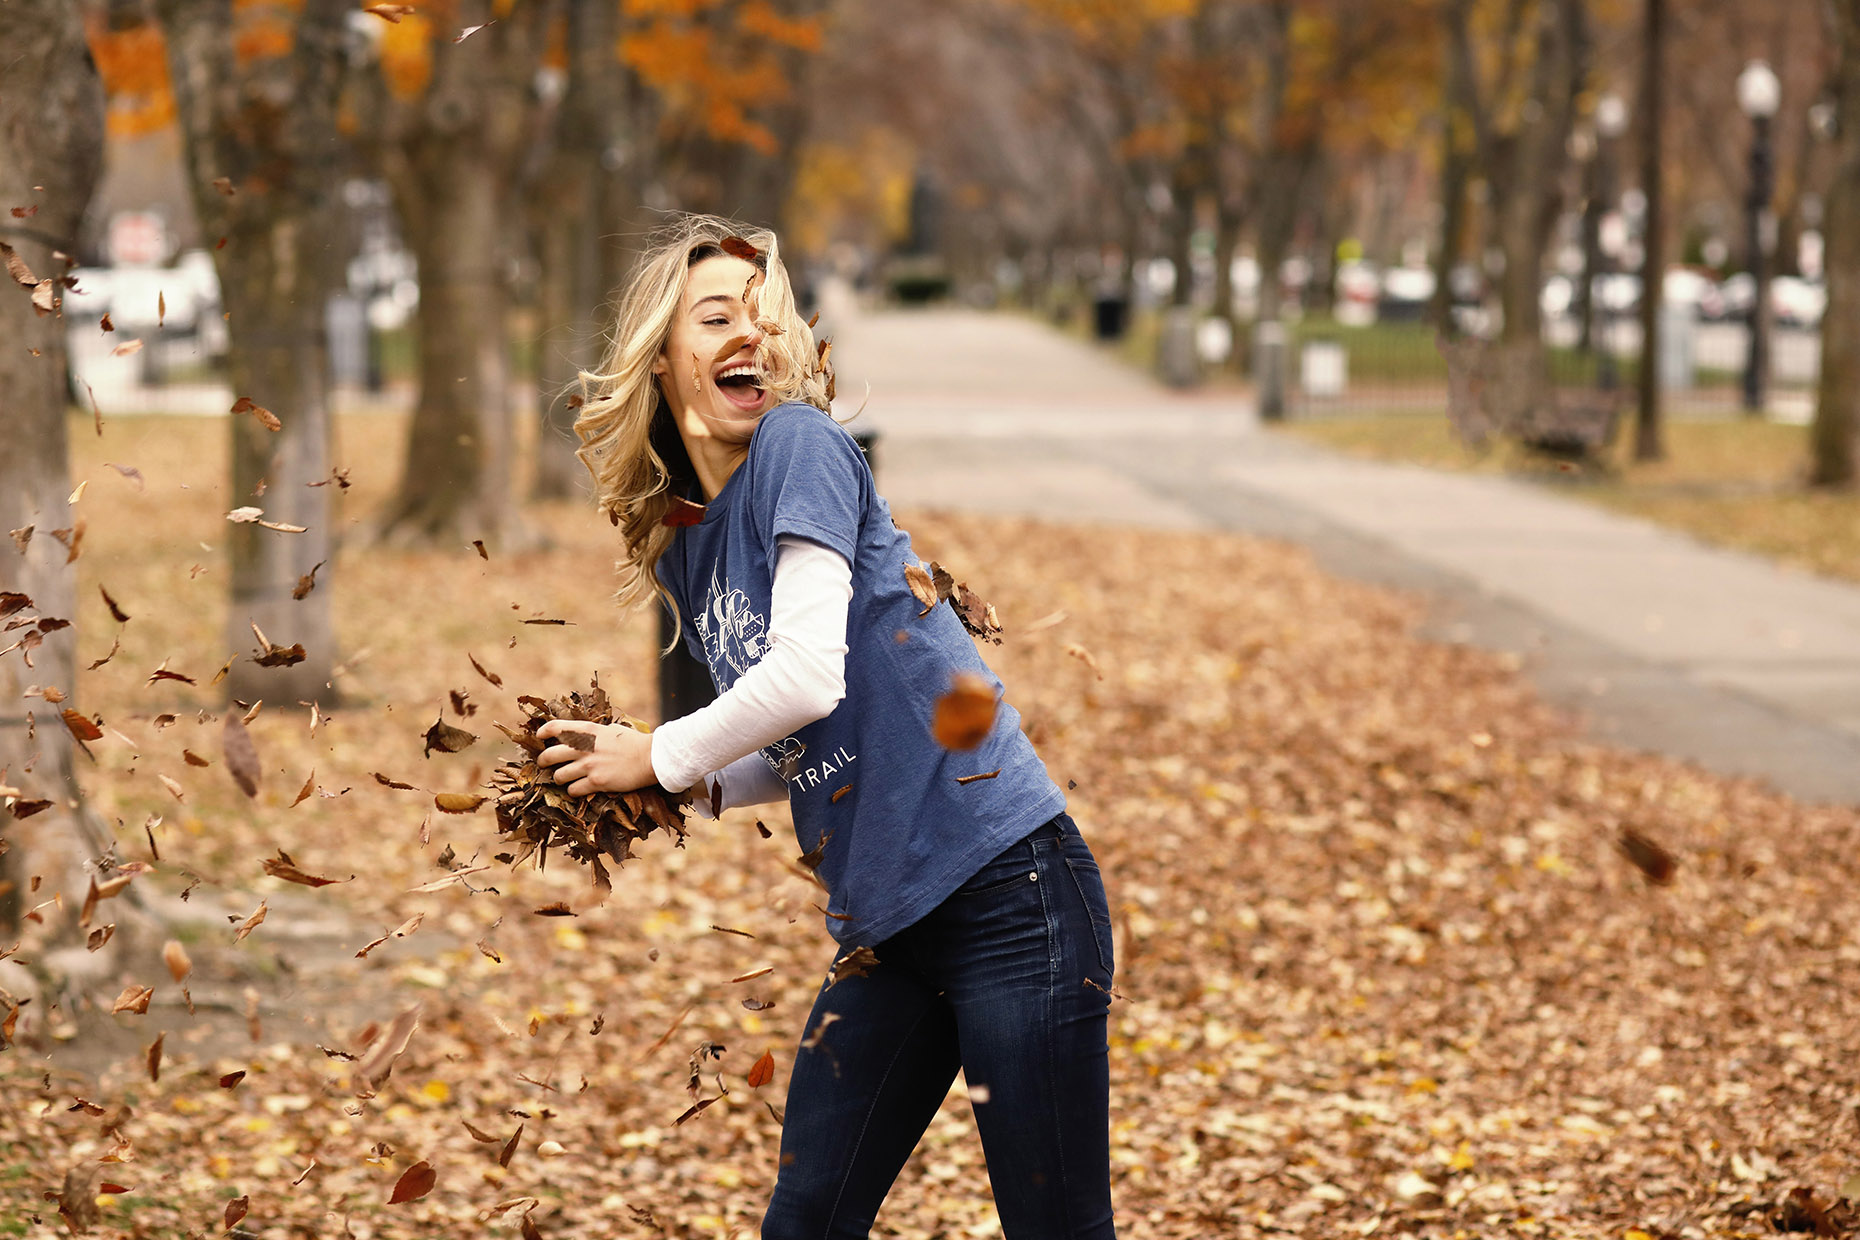 Leaf Fighting Girl Laughing